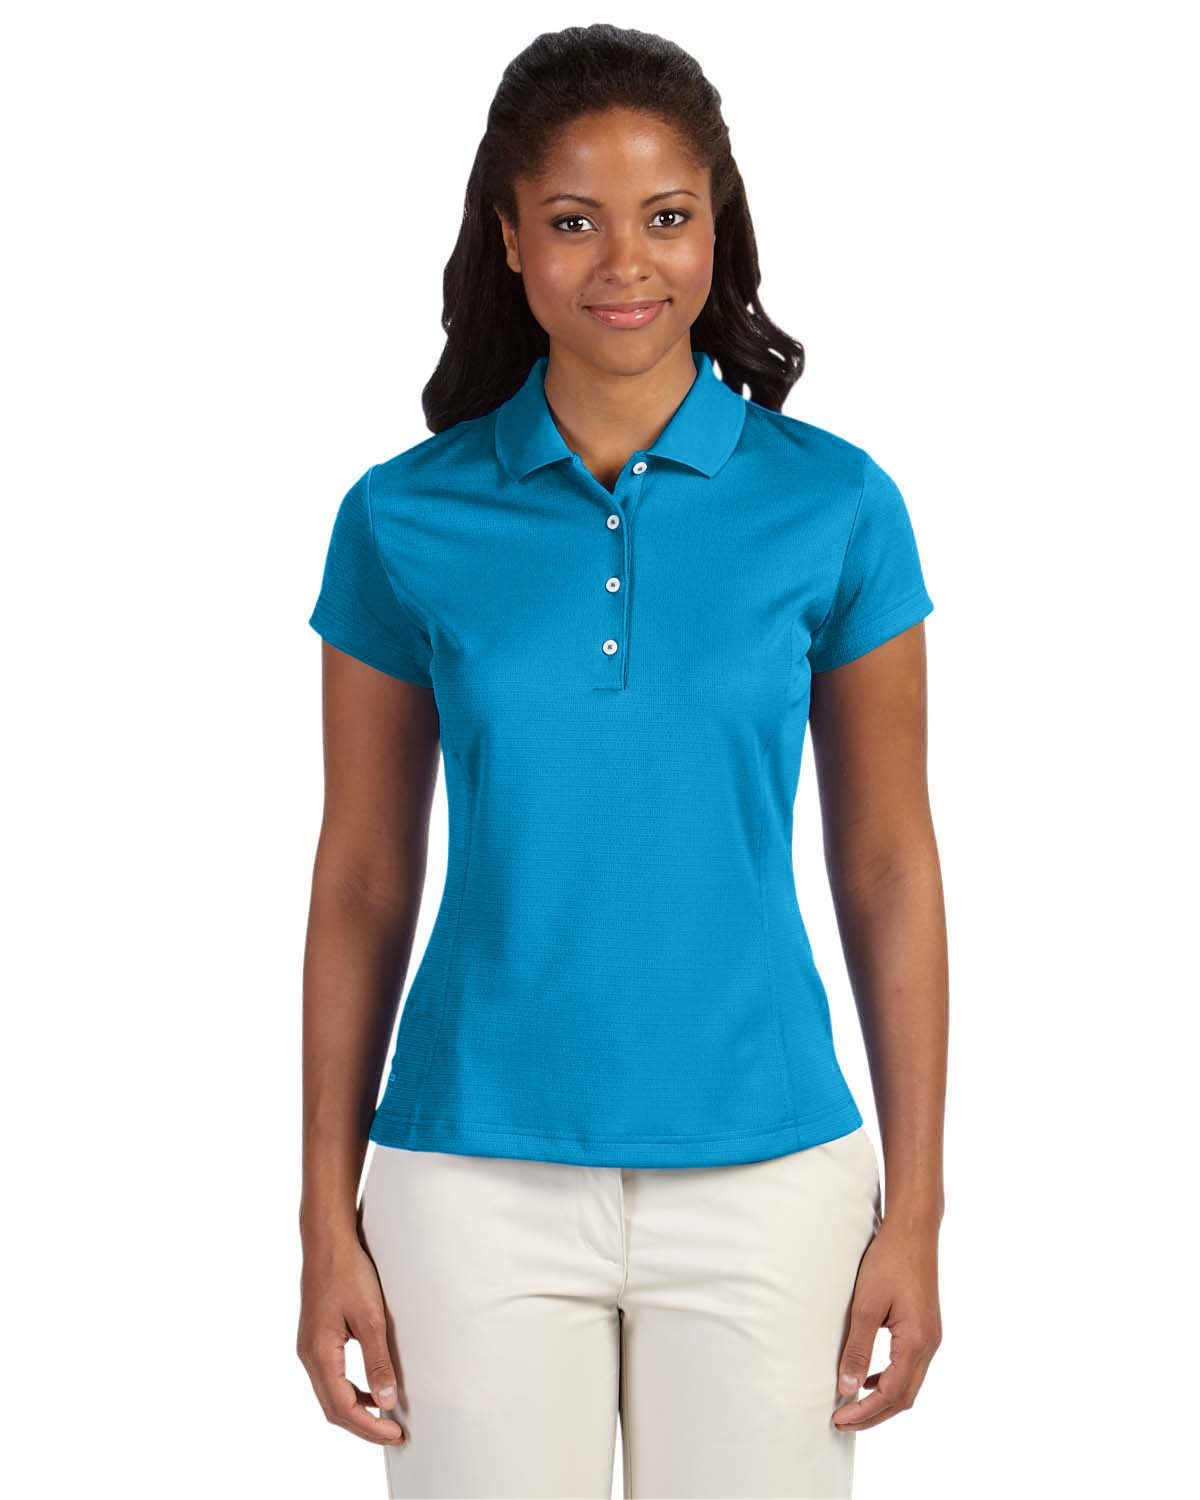 Adidas Golf A171 Ladies Climalite Solid Polo Shirts